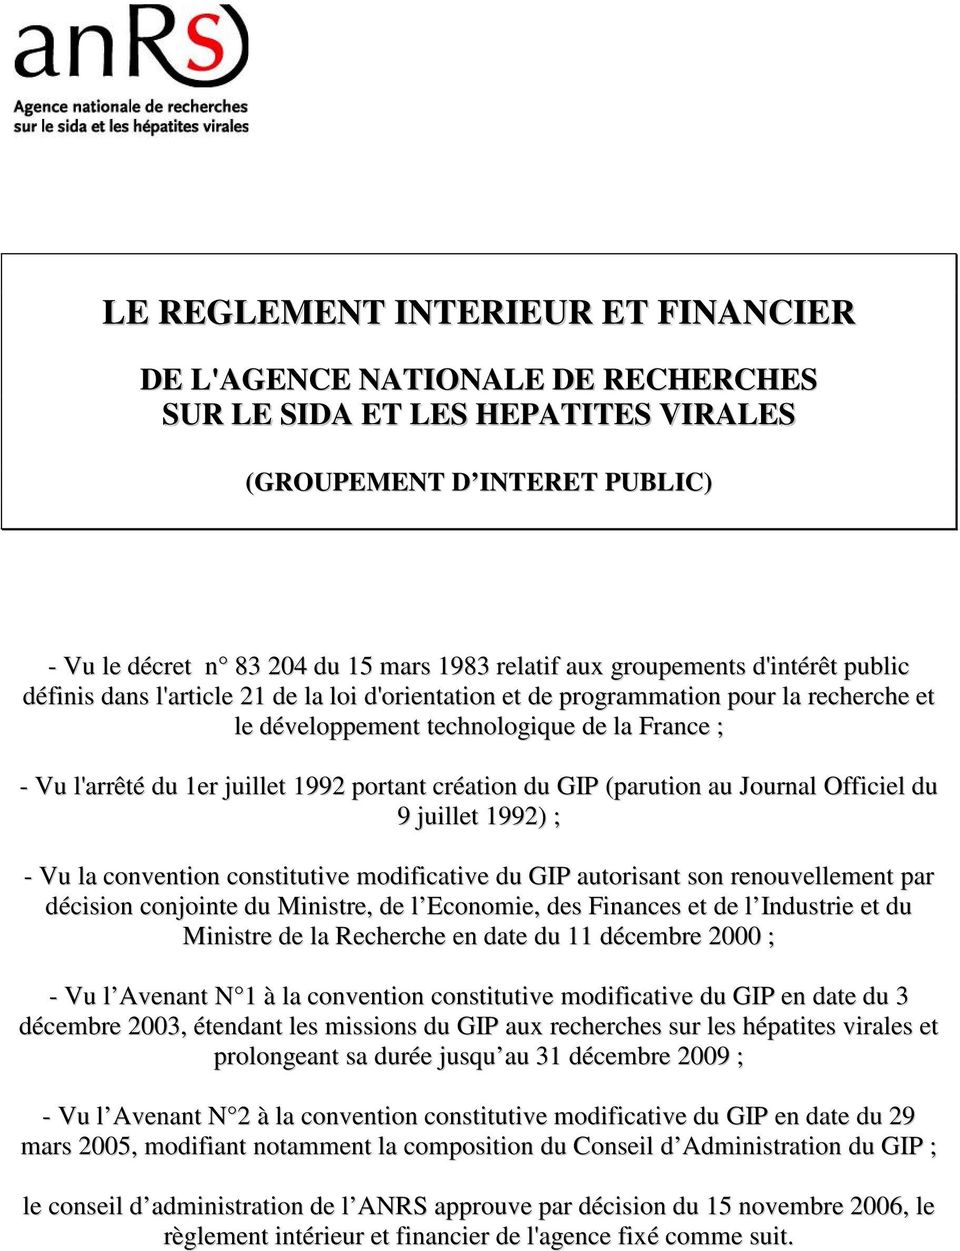 portant création du GIP (parution au Journal Officiel du 9 juillet 1992) ; - Vu la convention constitutive modificative du GIP autorisant son renouvellement par décision conjointe du Ministre, de l